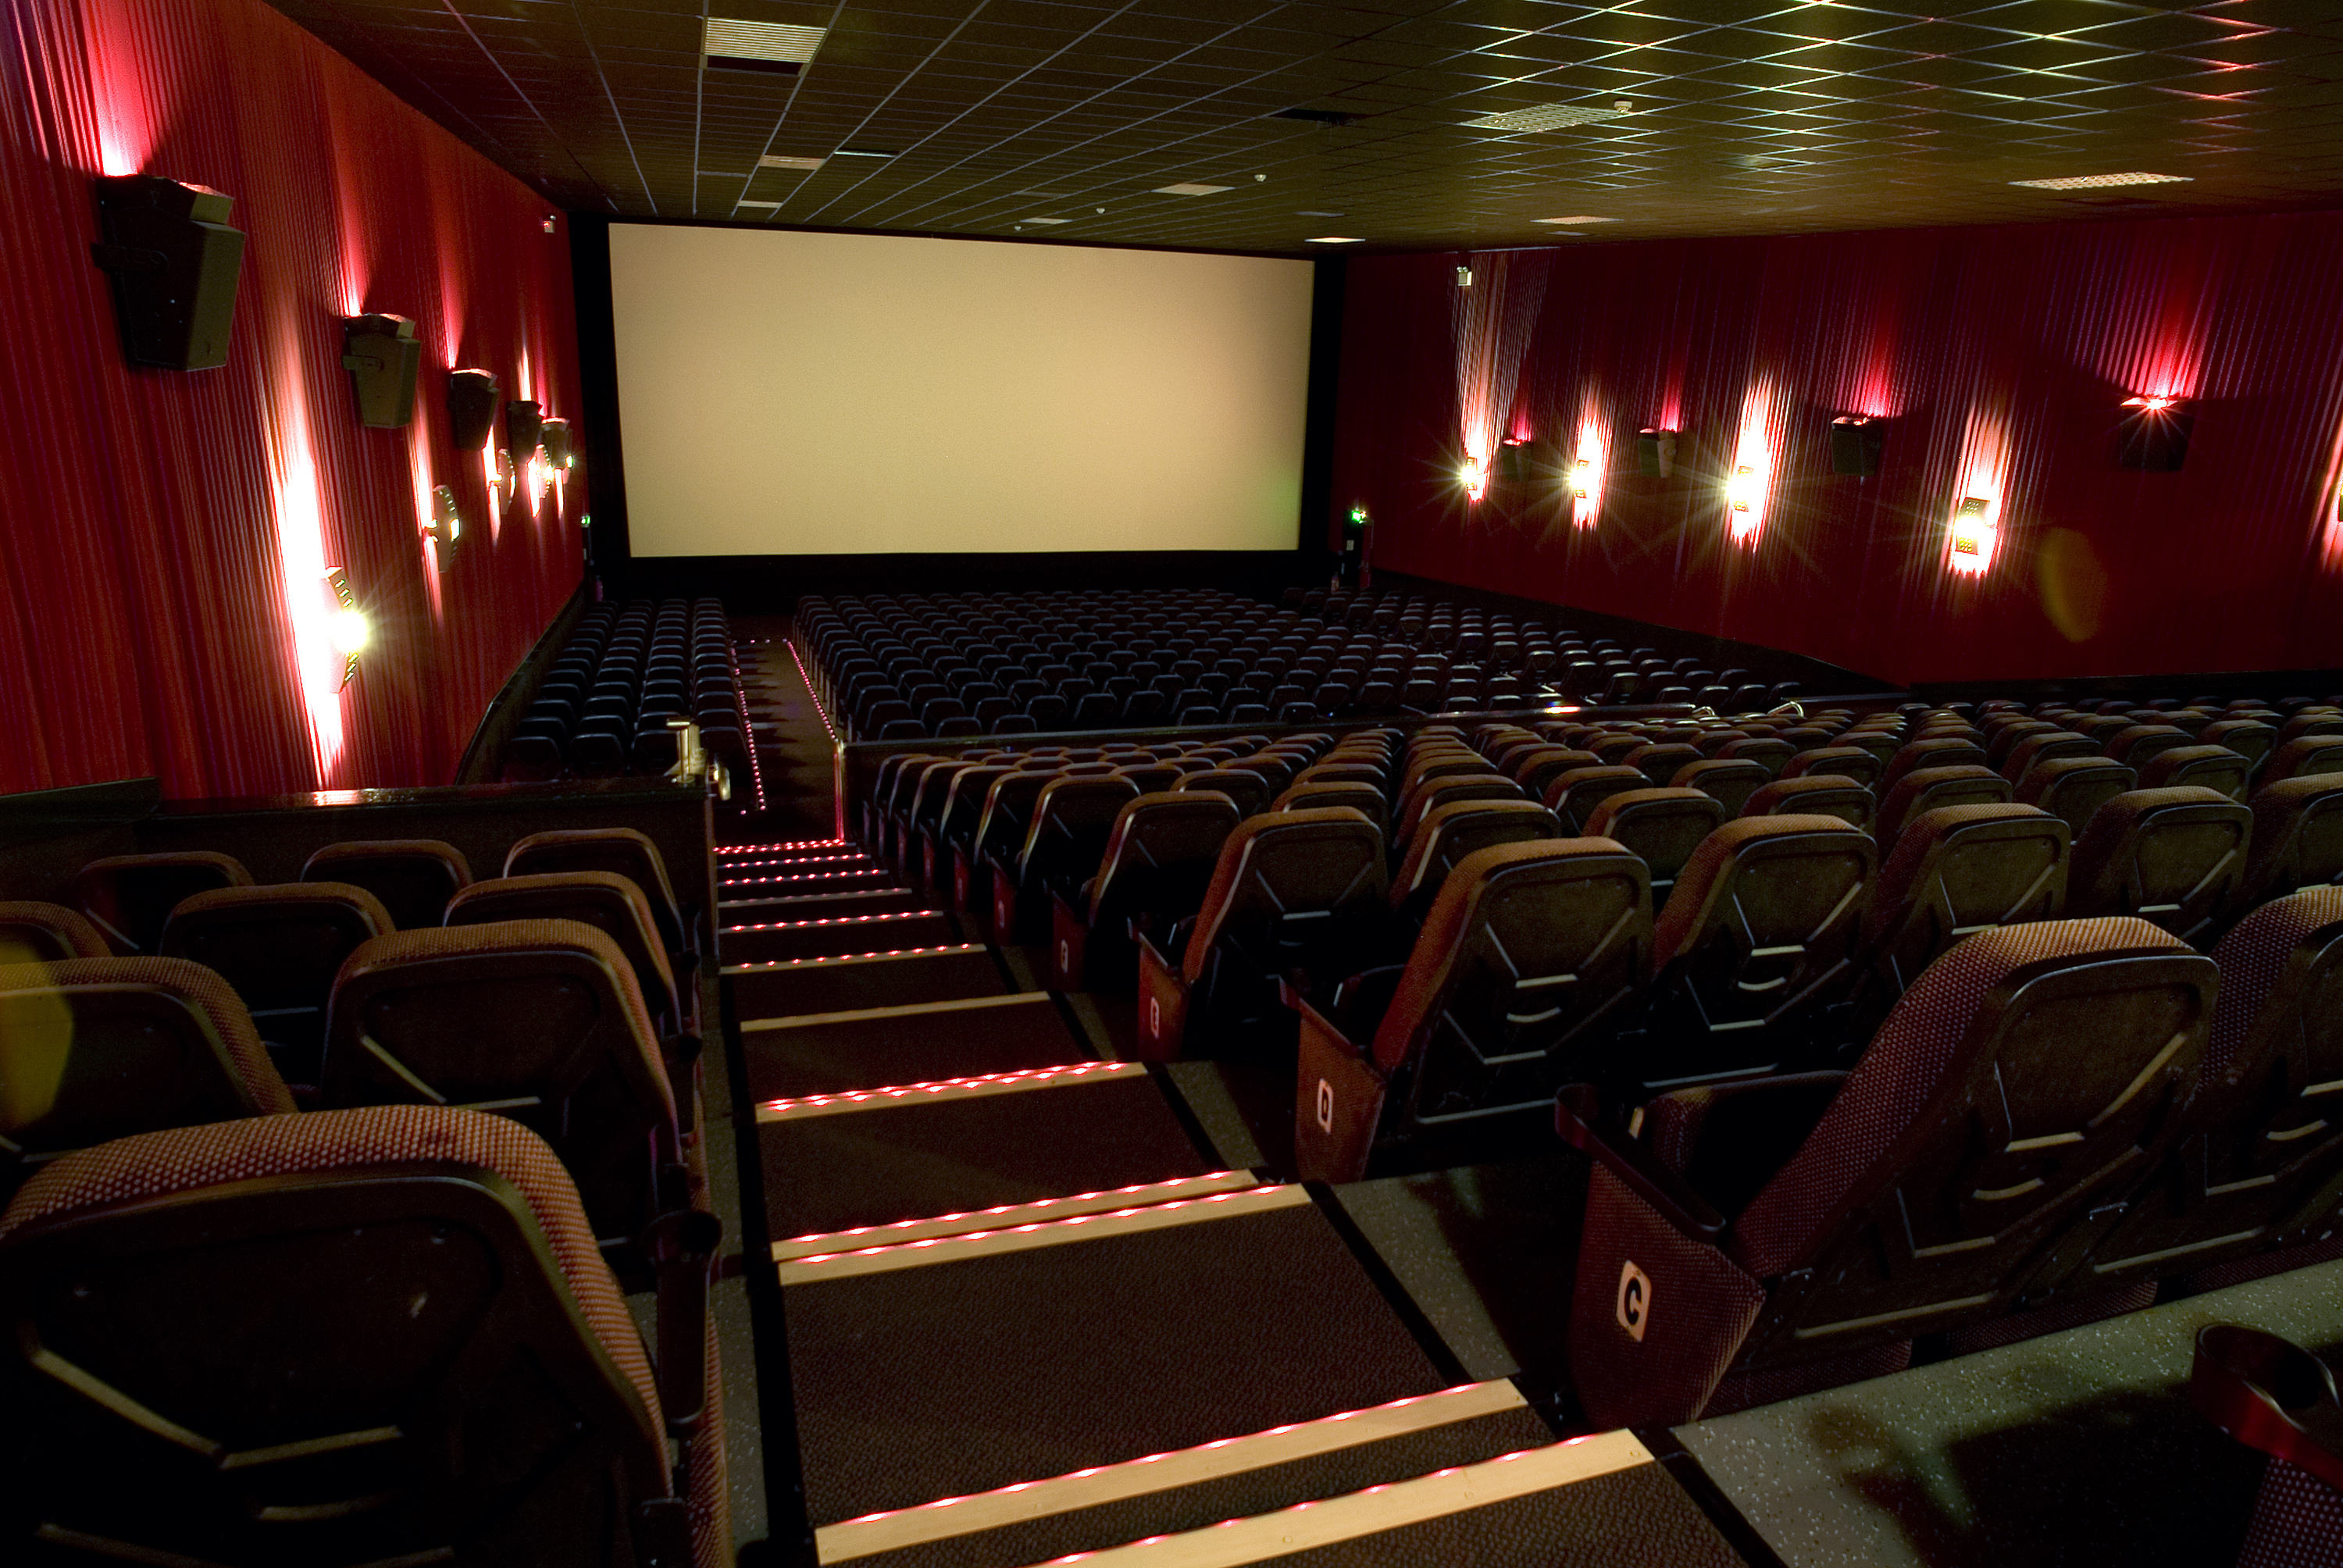 Interior of a cinema theatre